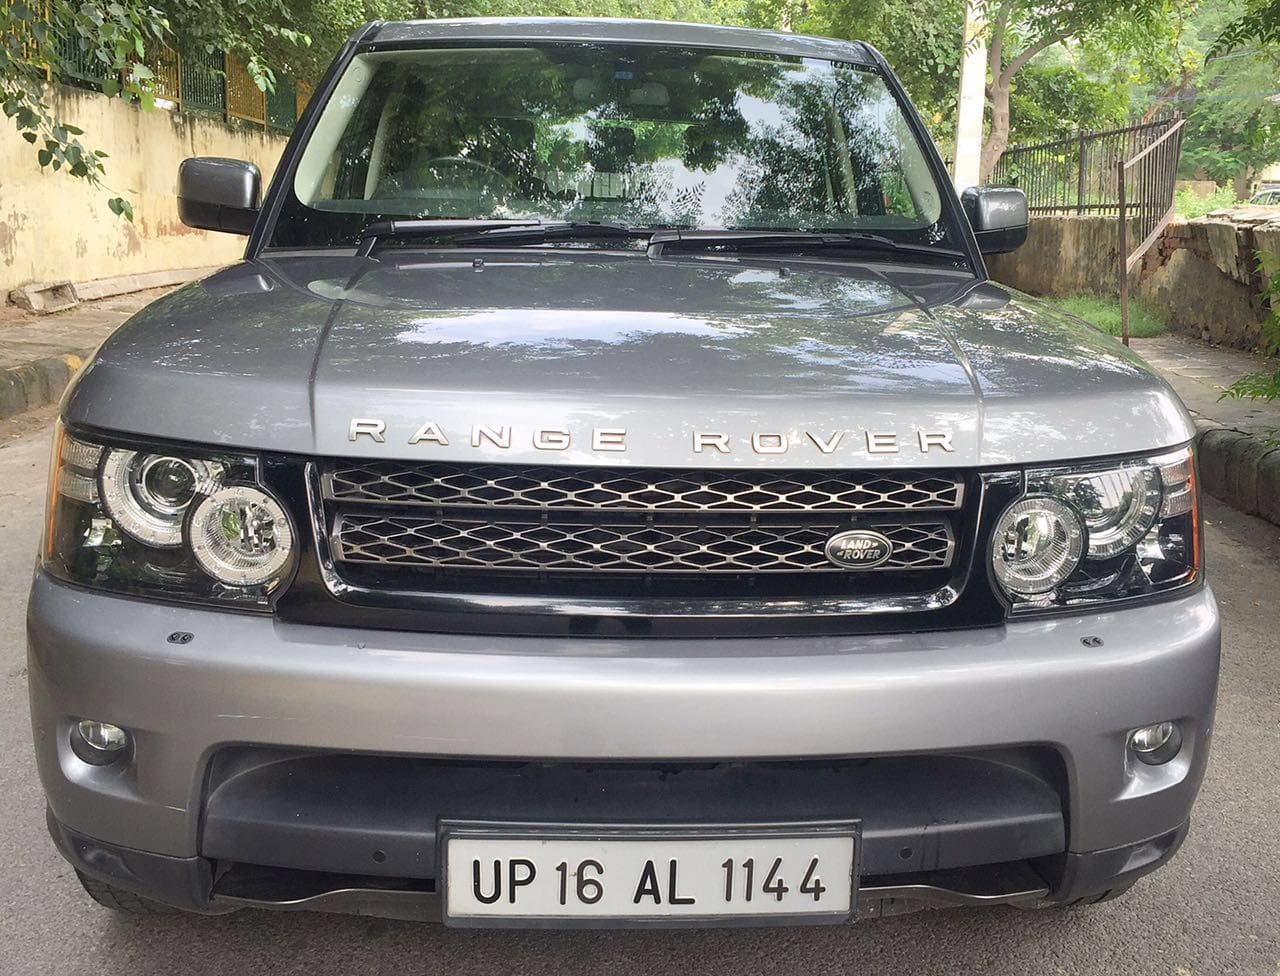 land rover range rover sport diesel se price specs review pics mileage in india. Black Bedroom Furniture Sets. Home Design Ideas